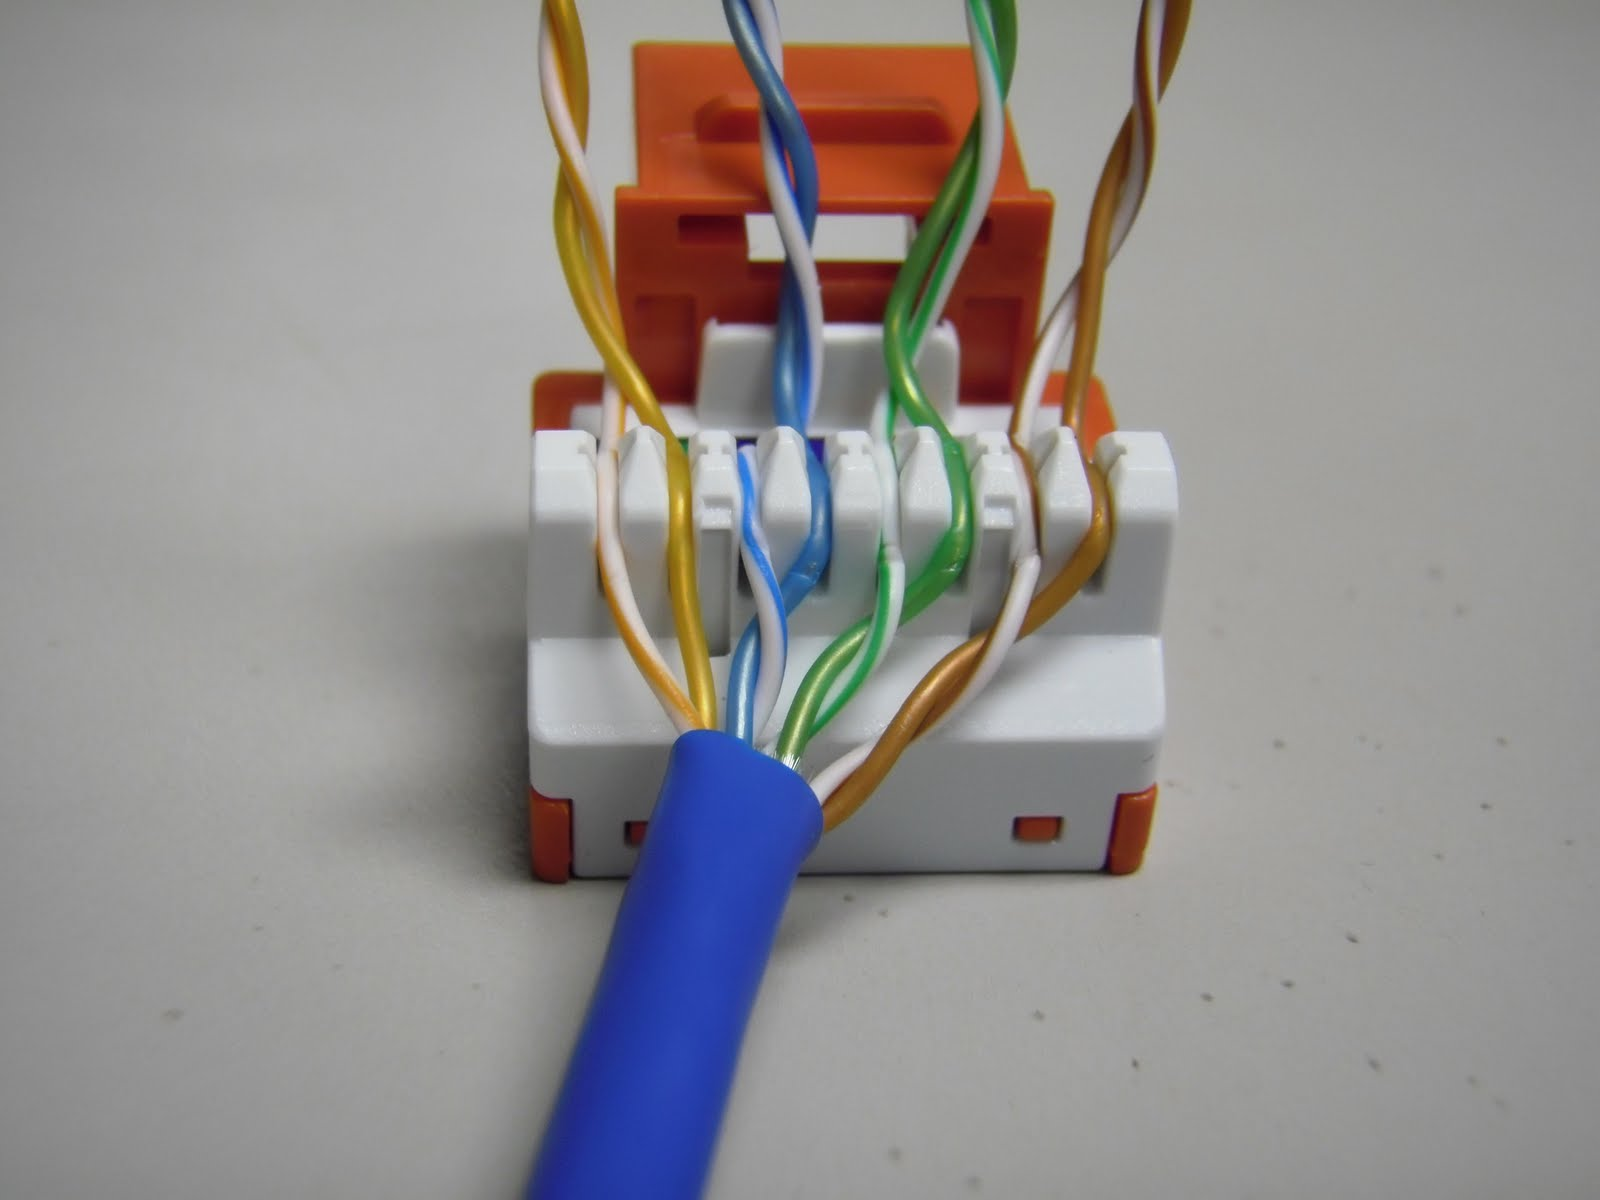 CAT5E+ER+JACK+WIRES+LACED the trench how to punch down cat5e cat6 keystone jacks rj45 keystone jack wiring diagram at crackthecode.co